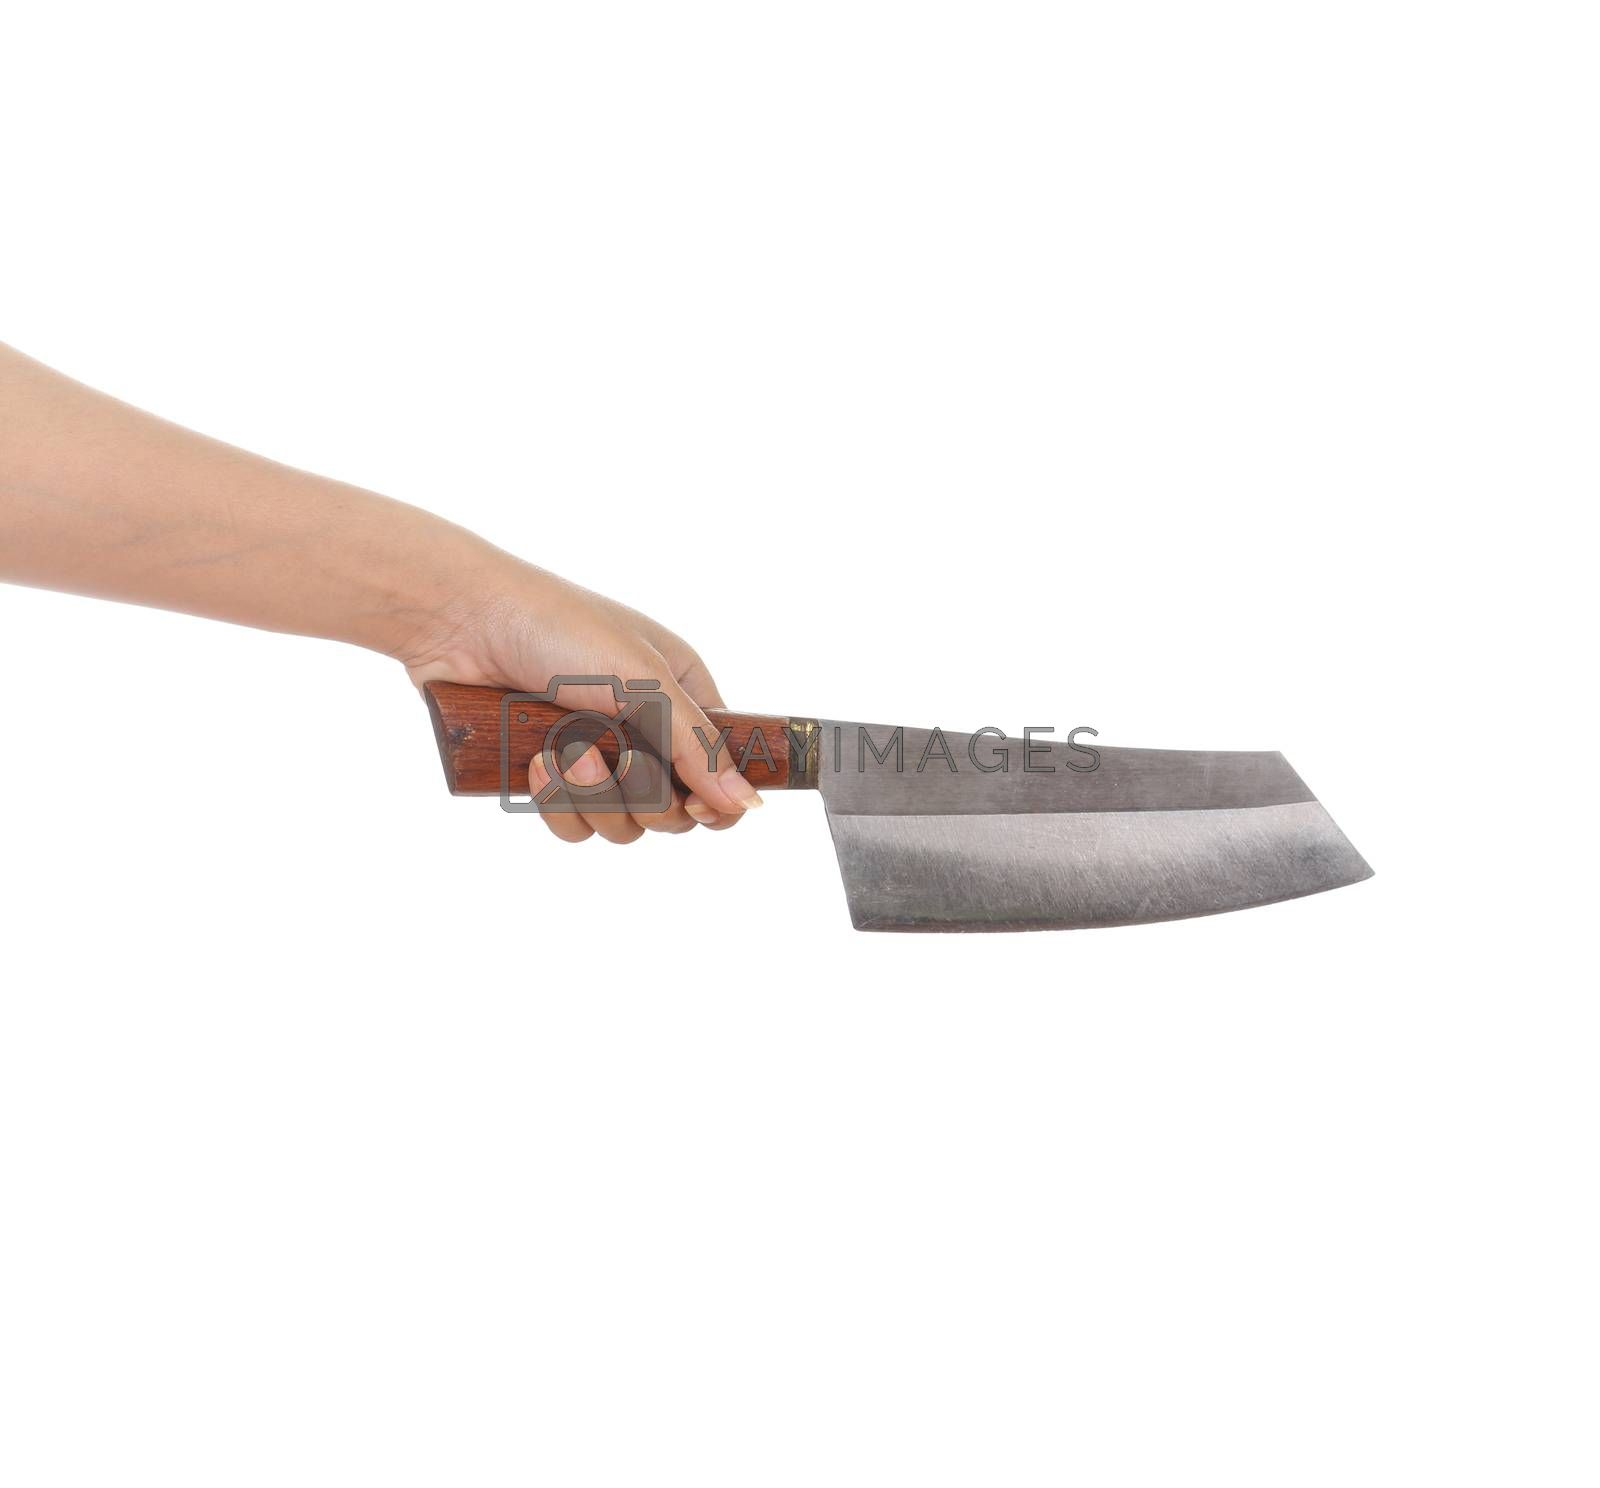 Royalty free image of knife in a hand by geargodz